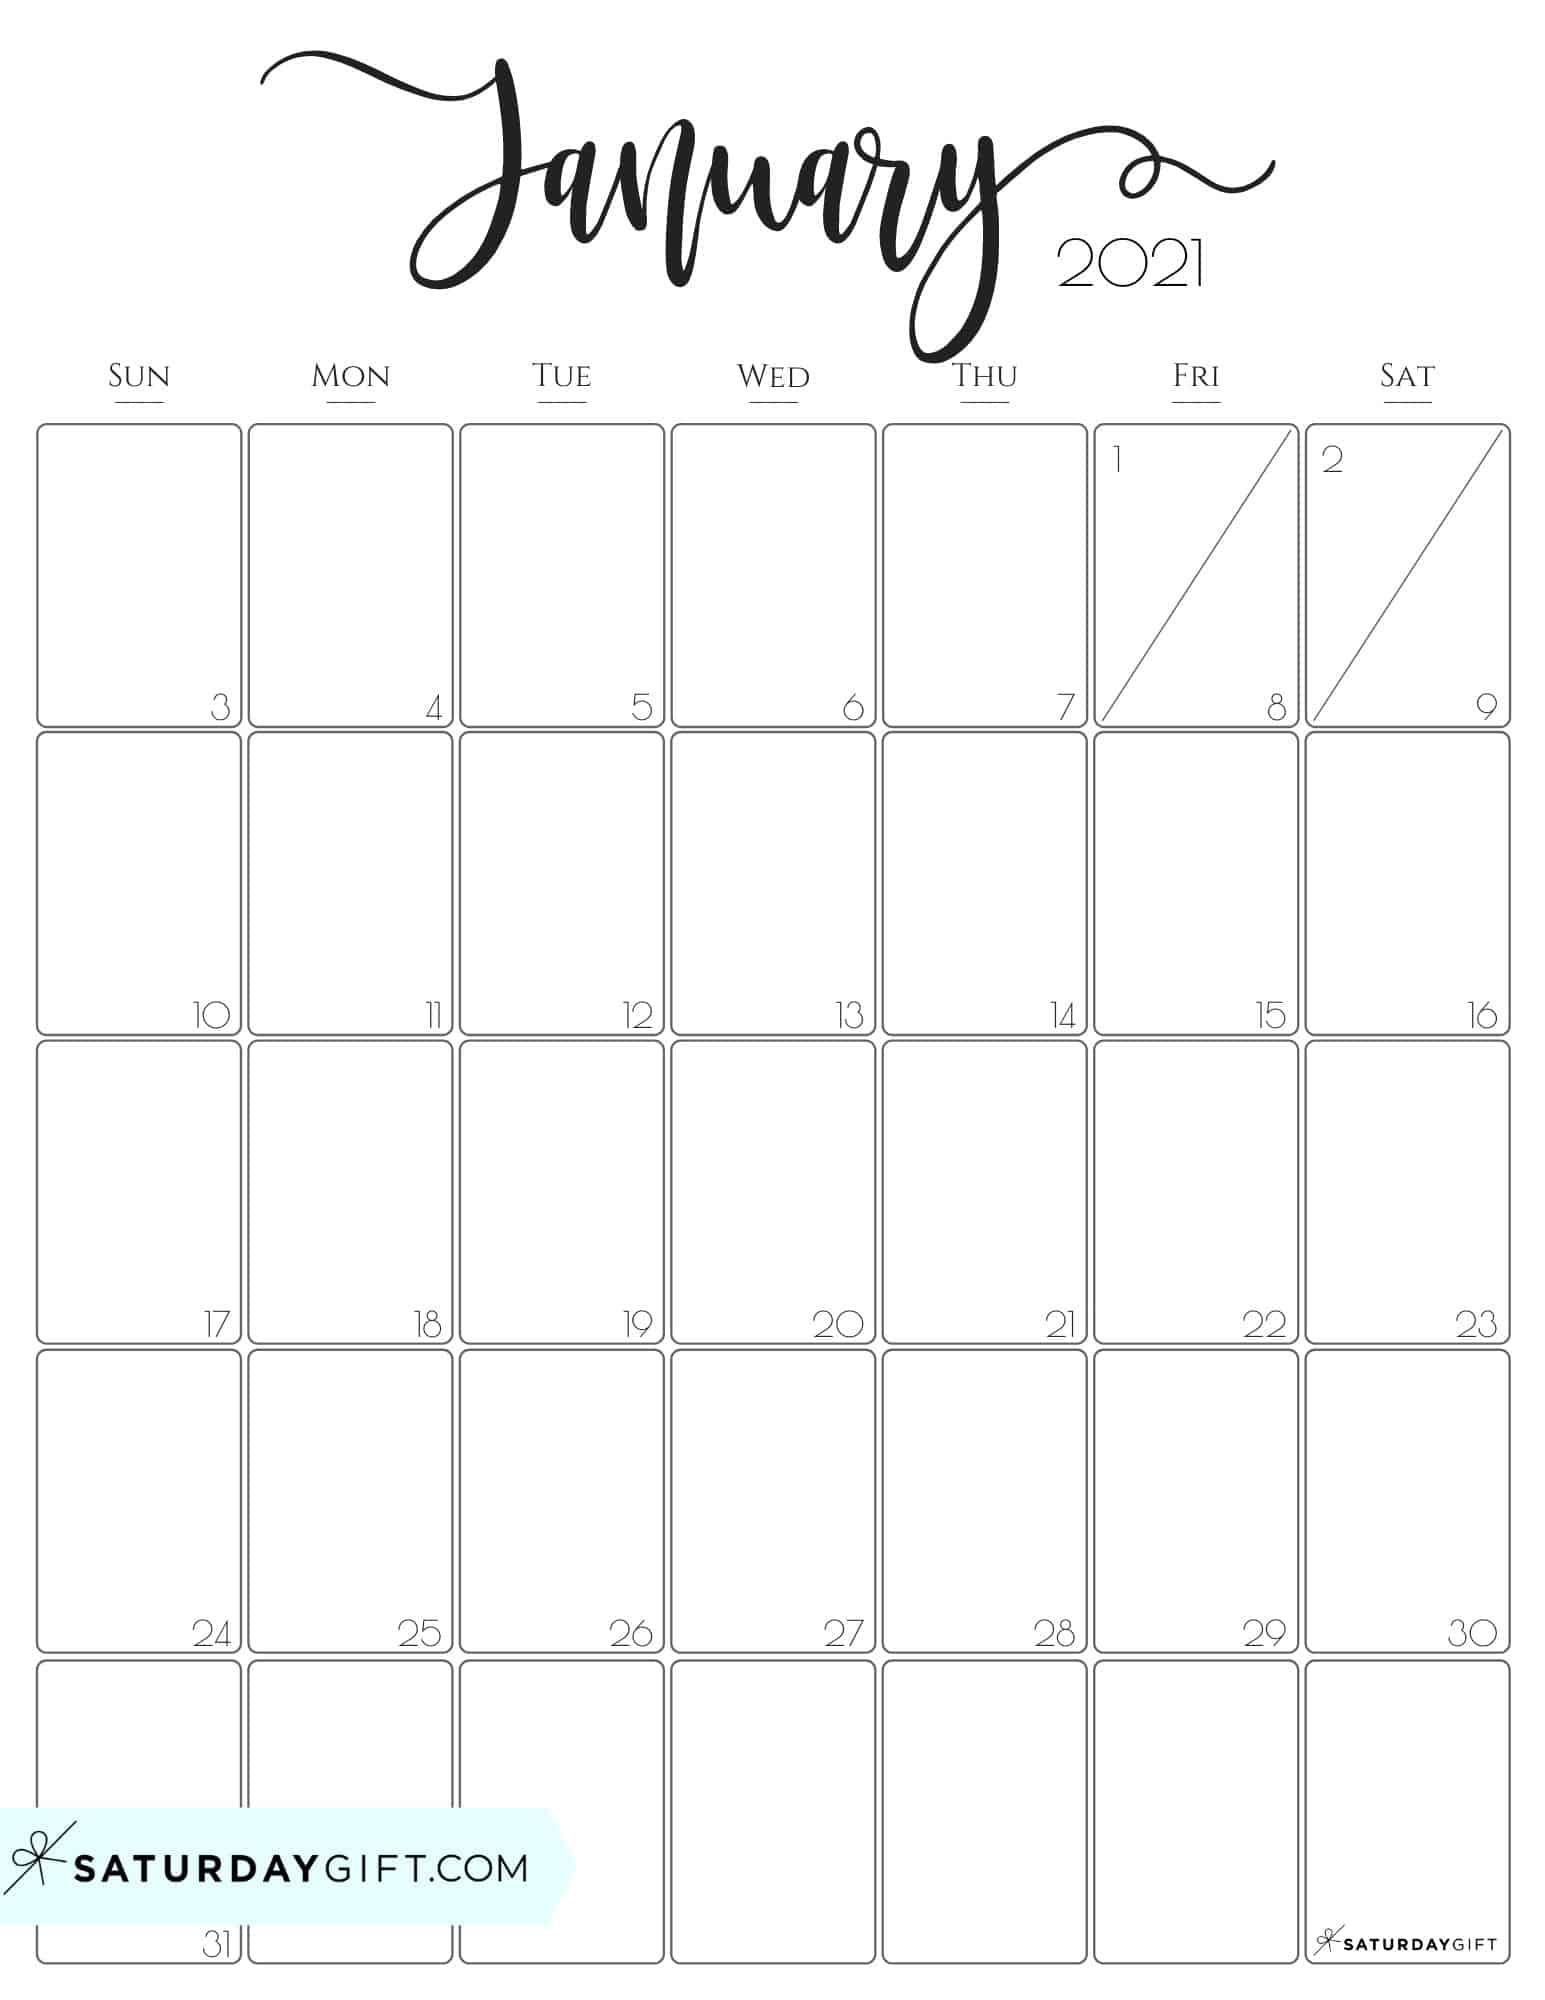 Cute Free Printable January 2021 Calendar Saturdaygift Calendar Printables Monthly Calendar Vertical Calendar